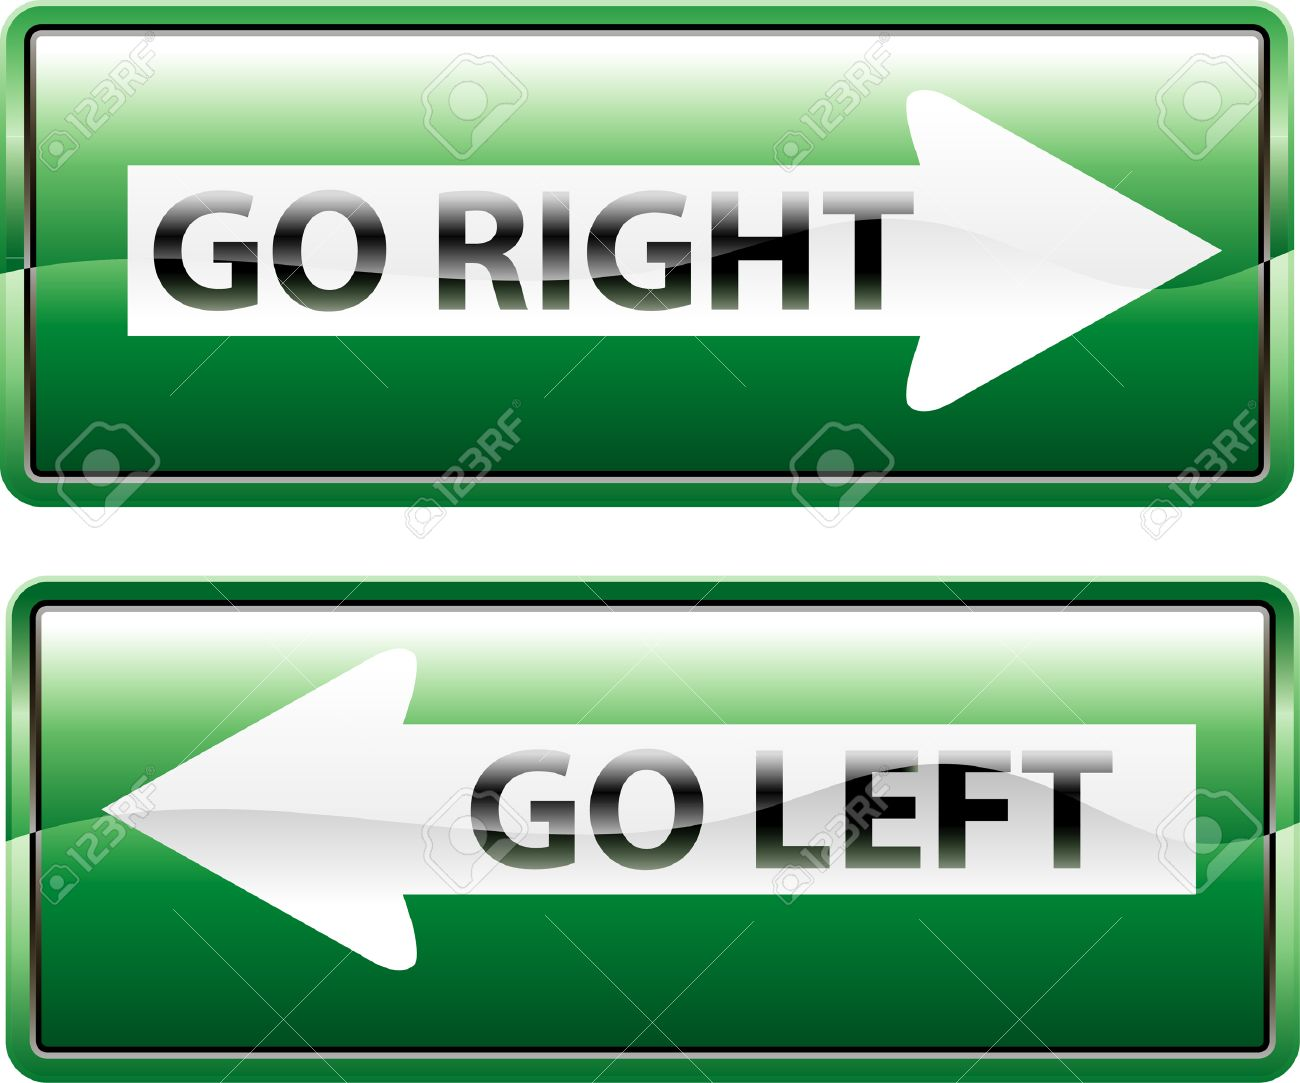 Go left or right clipart - Clipground